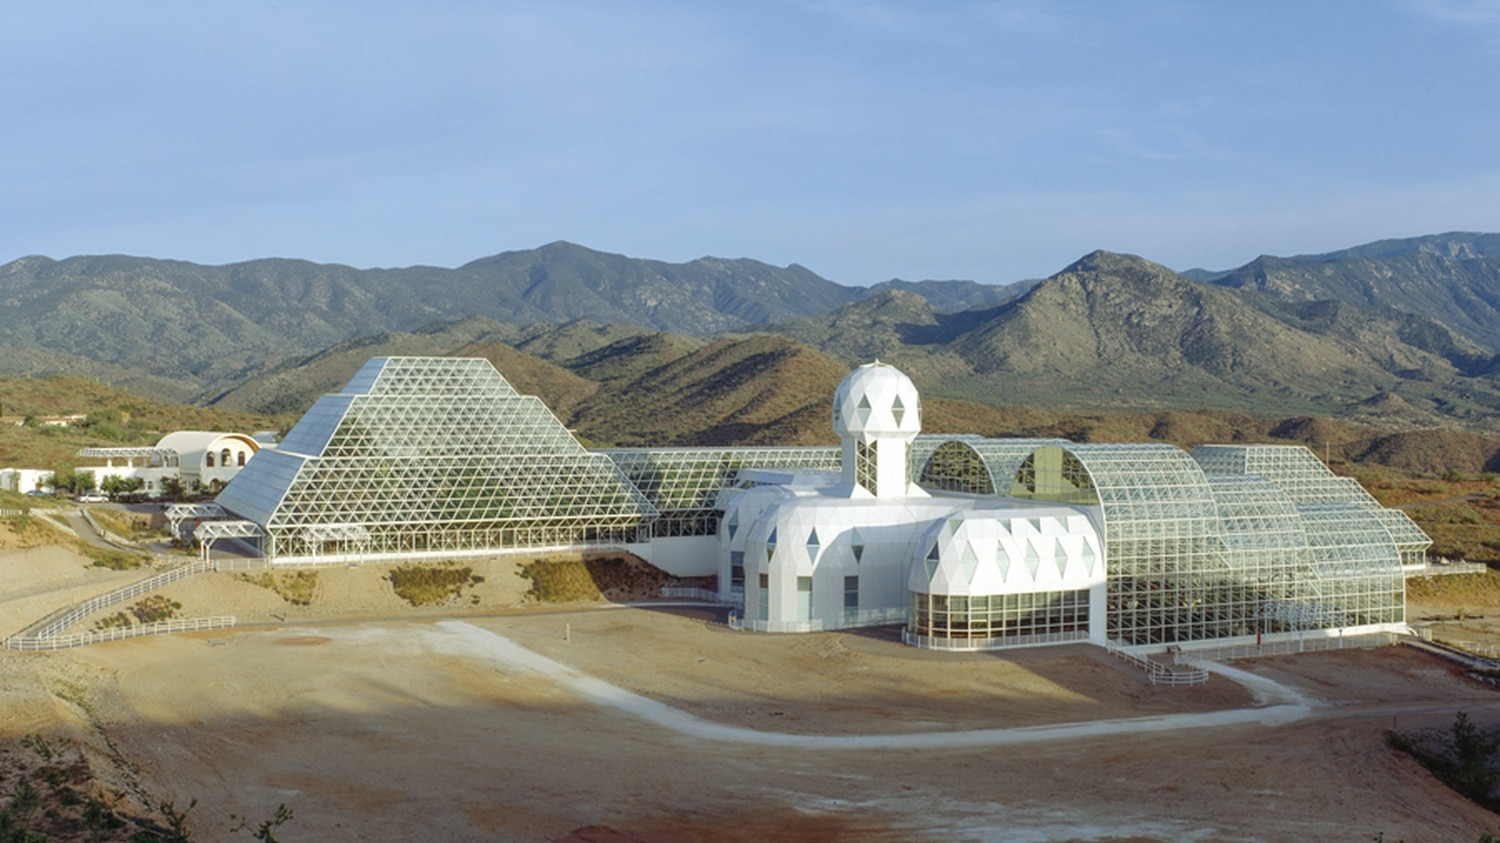 Mark Nelson recently published a book on his time as part of Biosphere 2, a research project in Arizona.